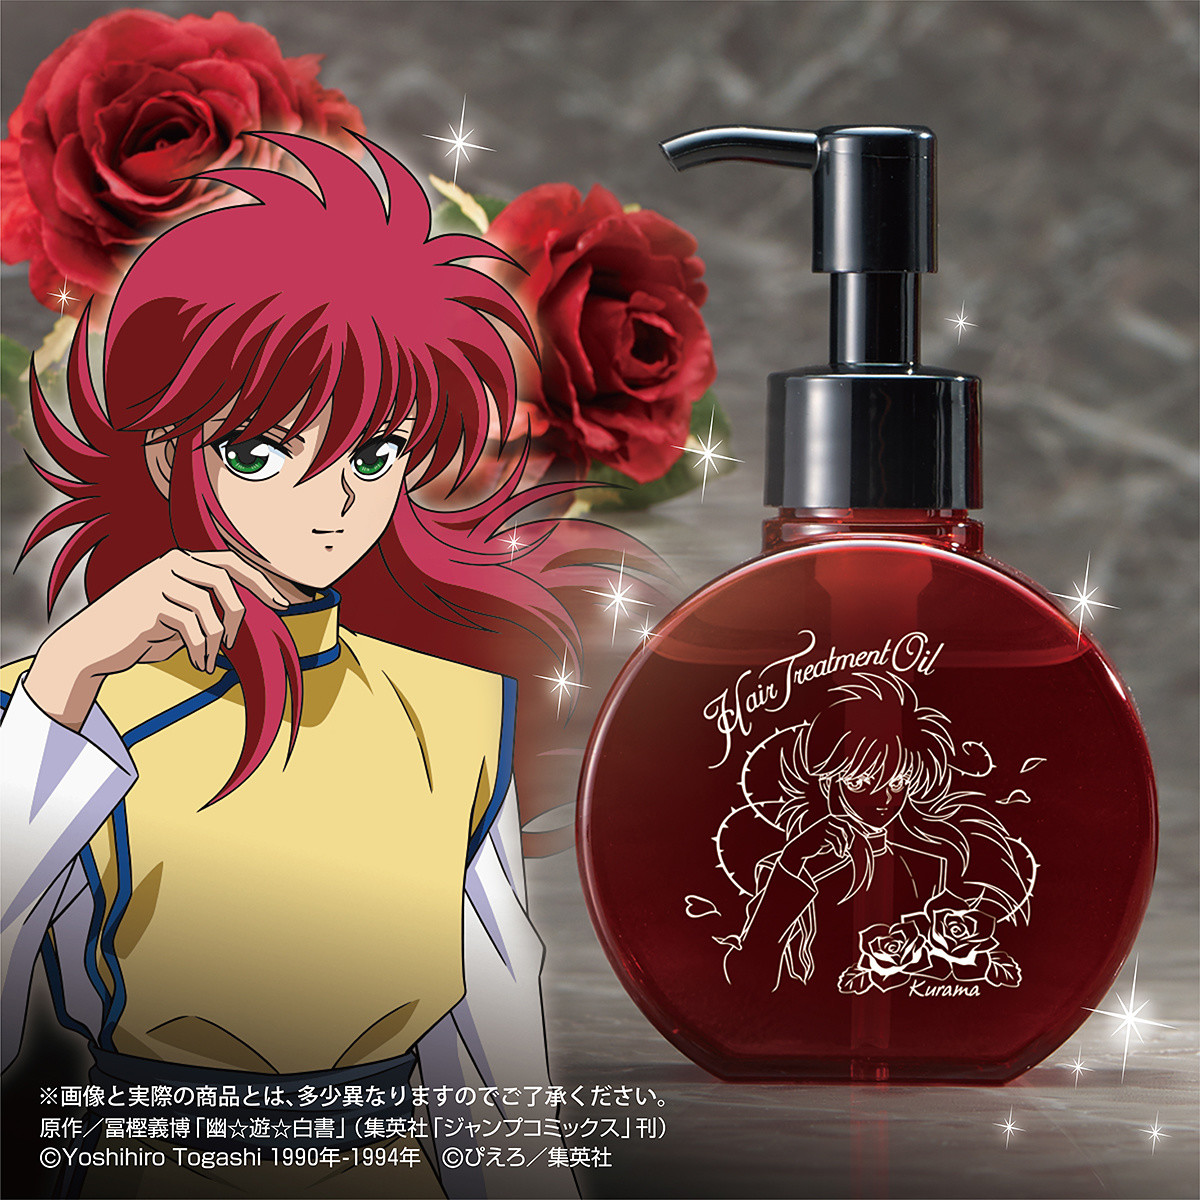 Yu Yu Hakusho Kurama's Hair Treatment Oil Up For Pre-order